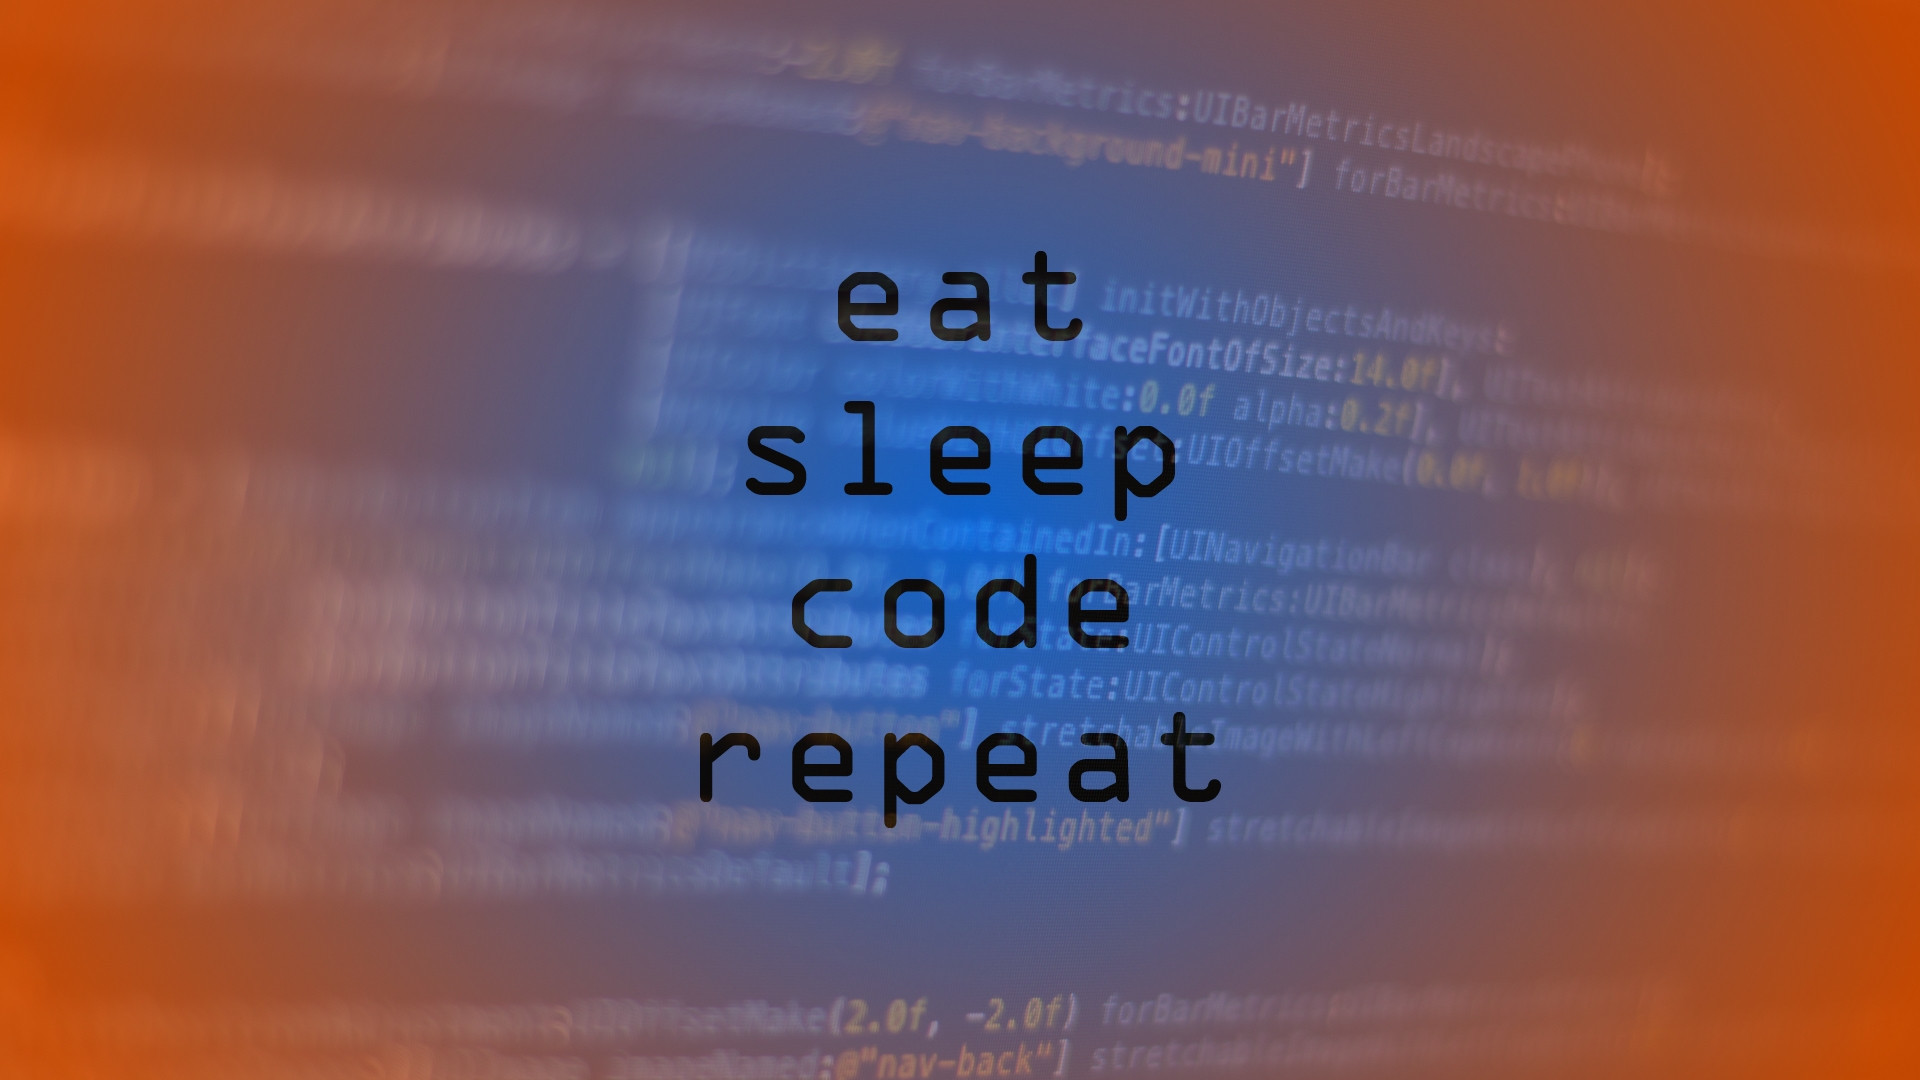 Couldn't find a good coding wallpaper, so I made my own!